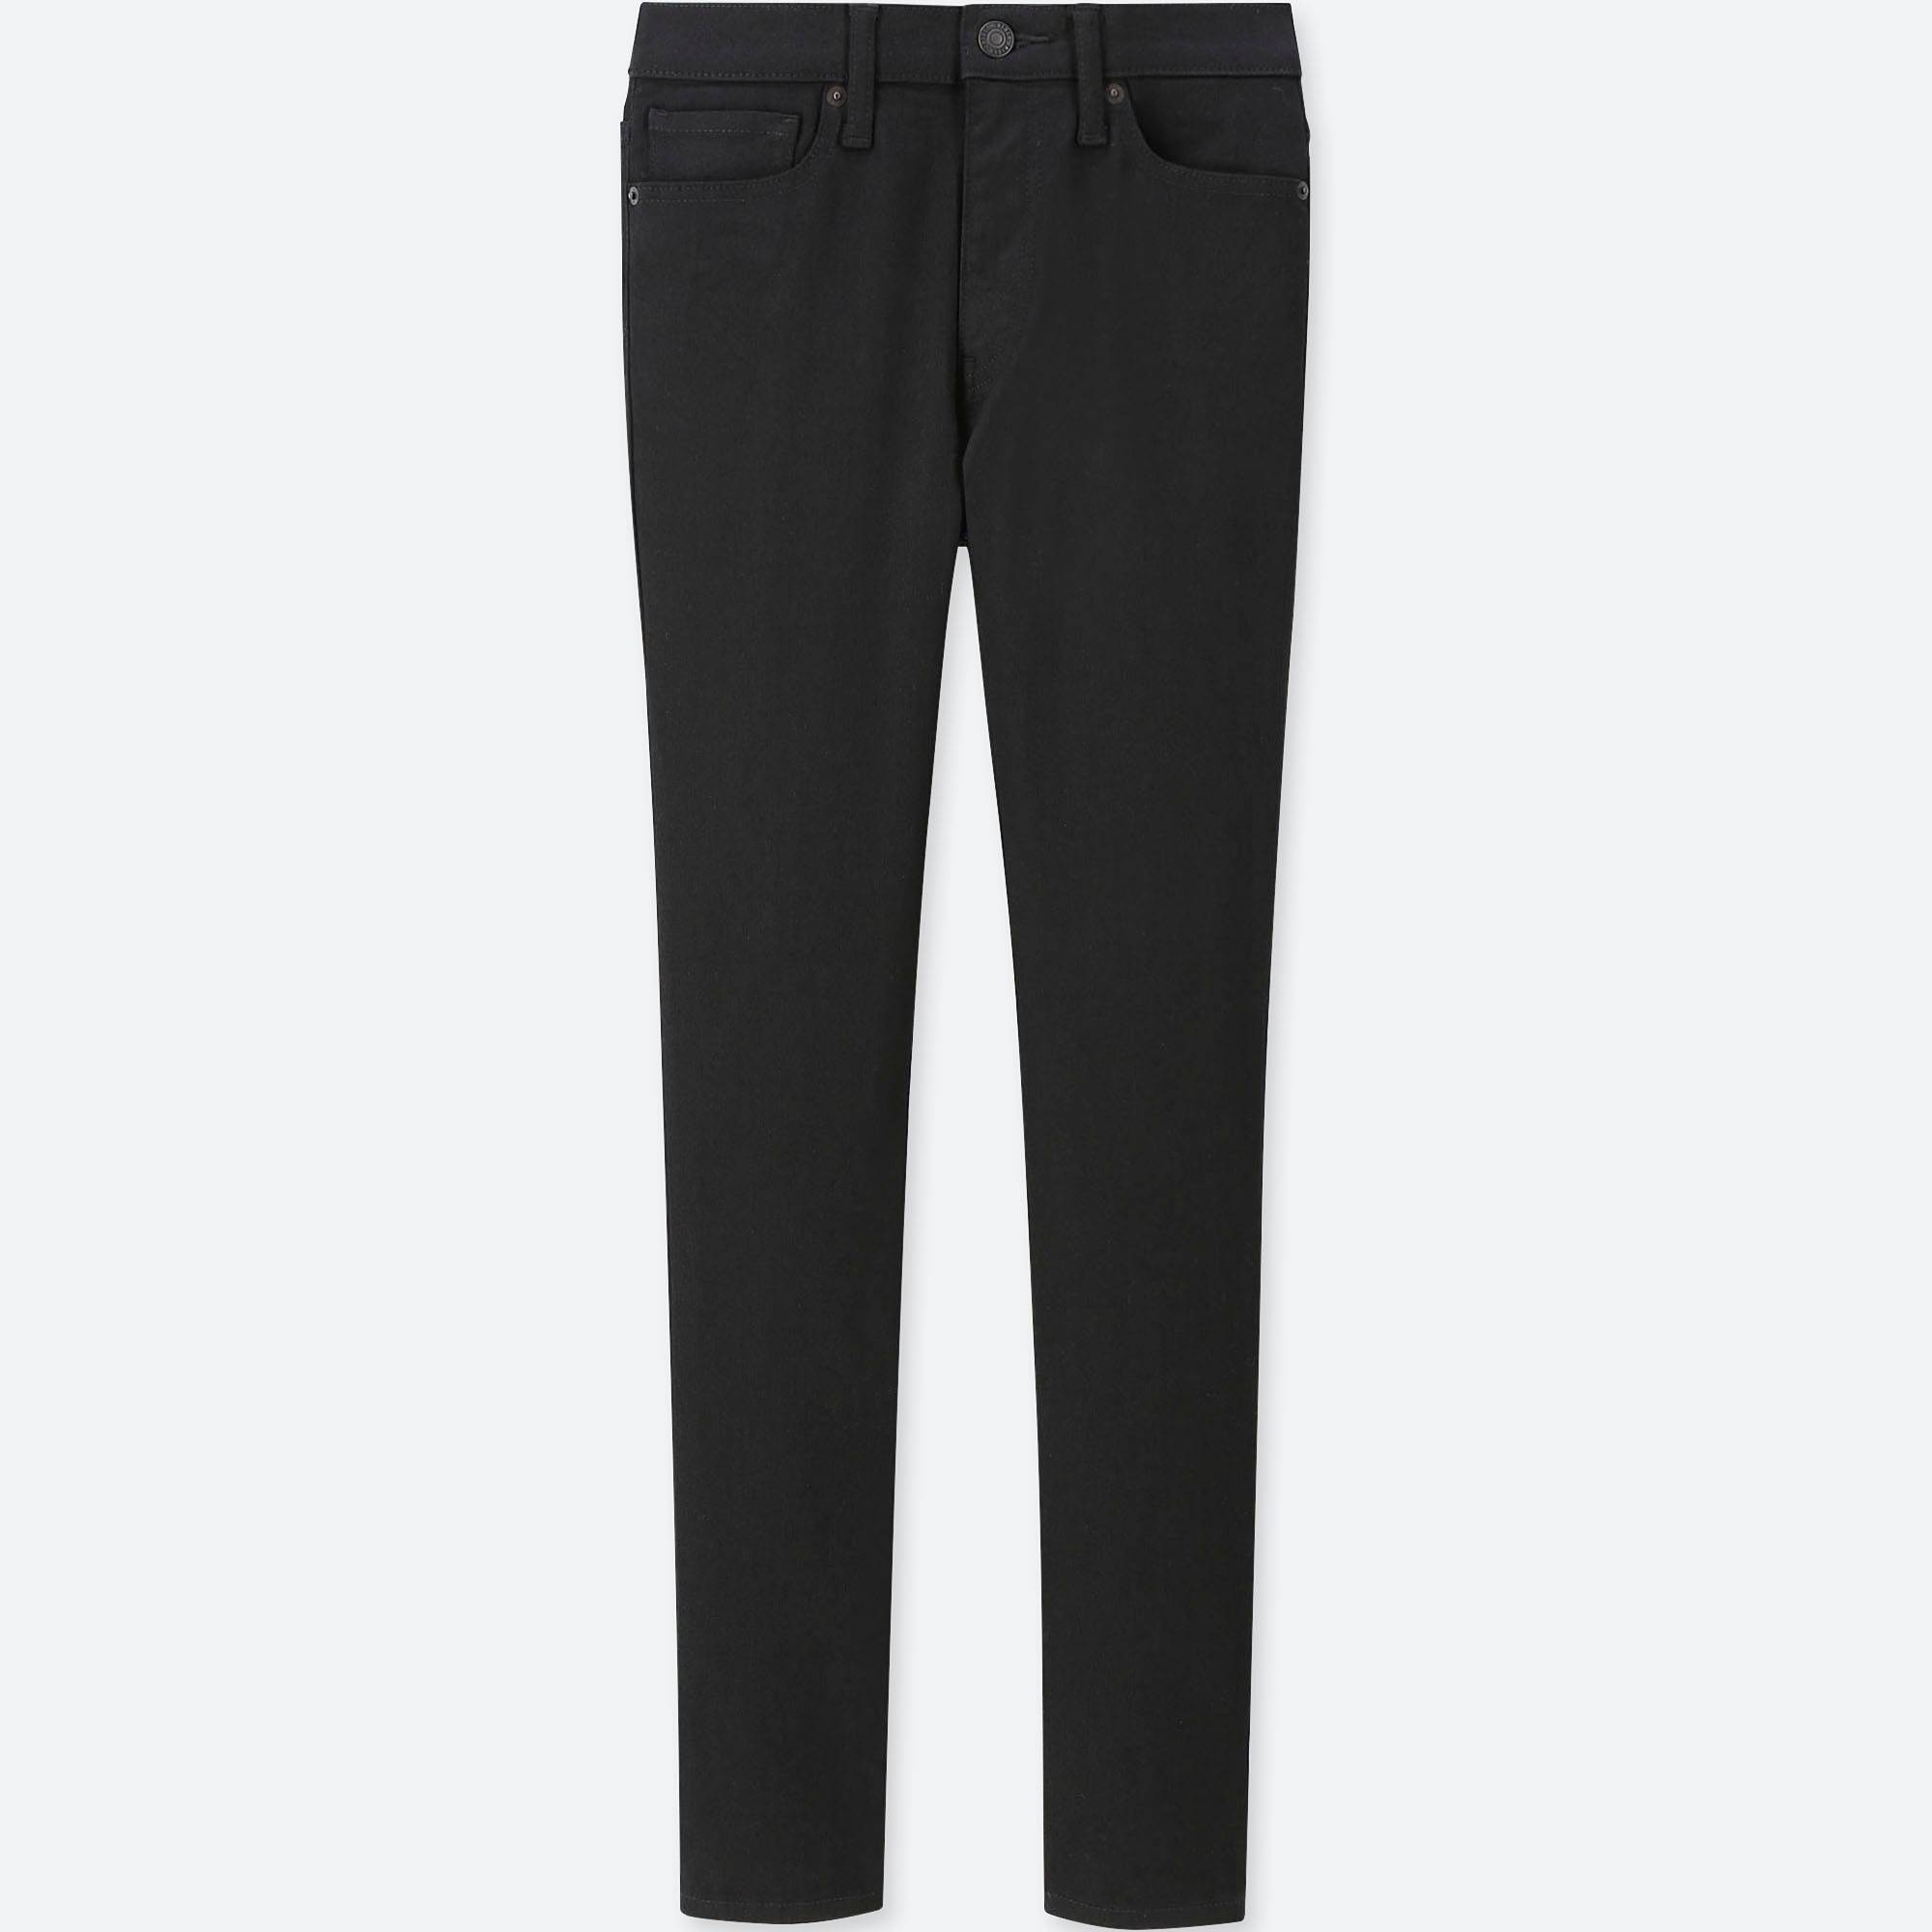 UNIQLO / Jeans women high-rise cigarette jeans